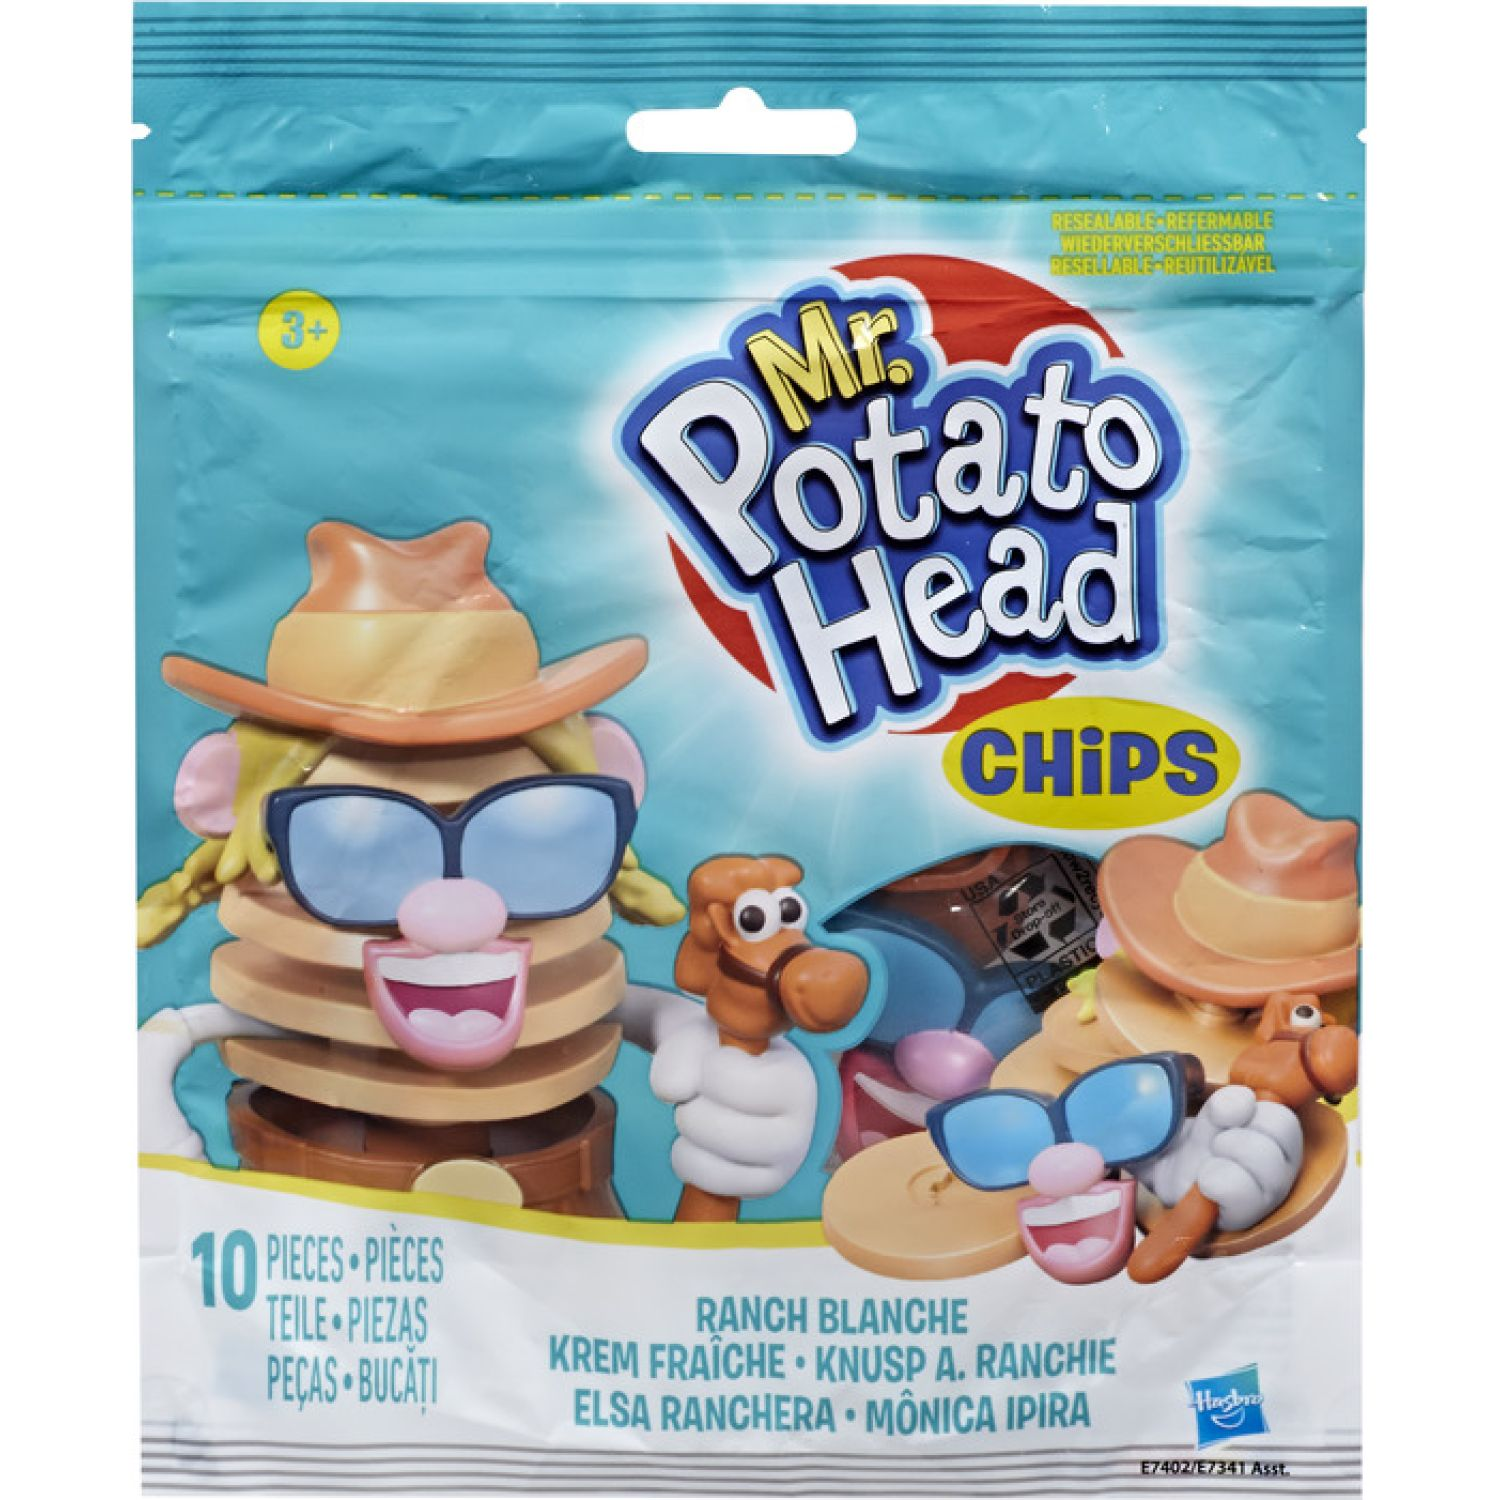 Toy Story MPH CHIPS RANCH BLANCHE Varios Figuras de acción